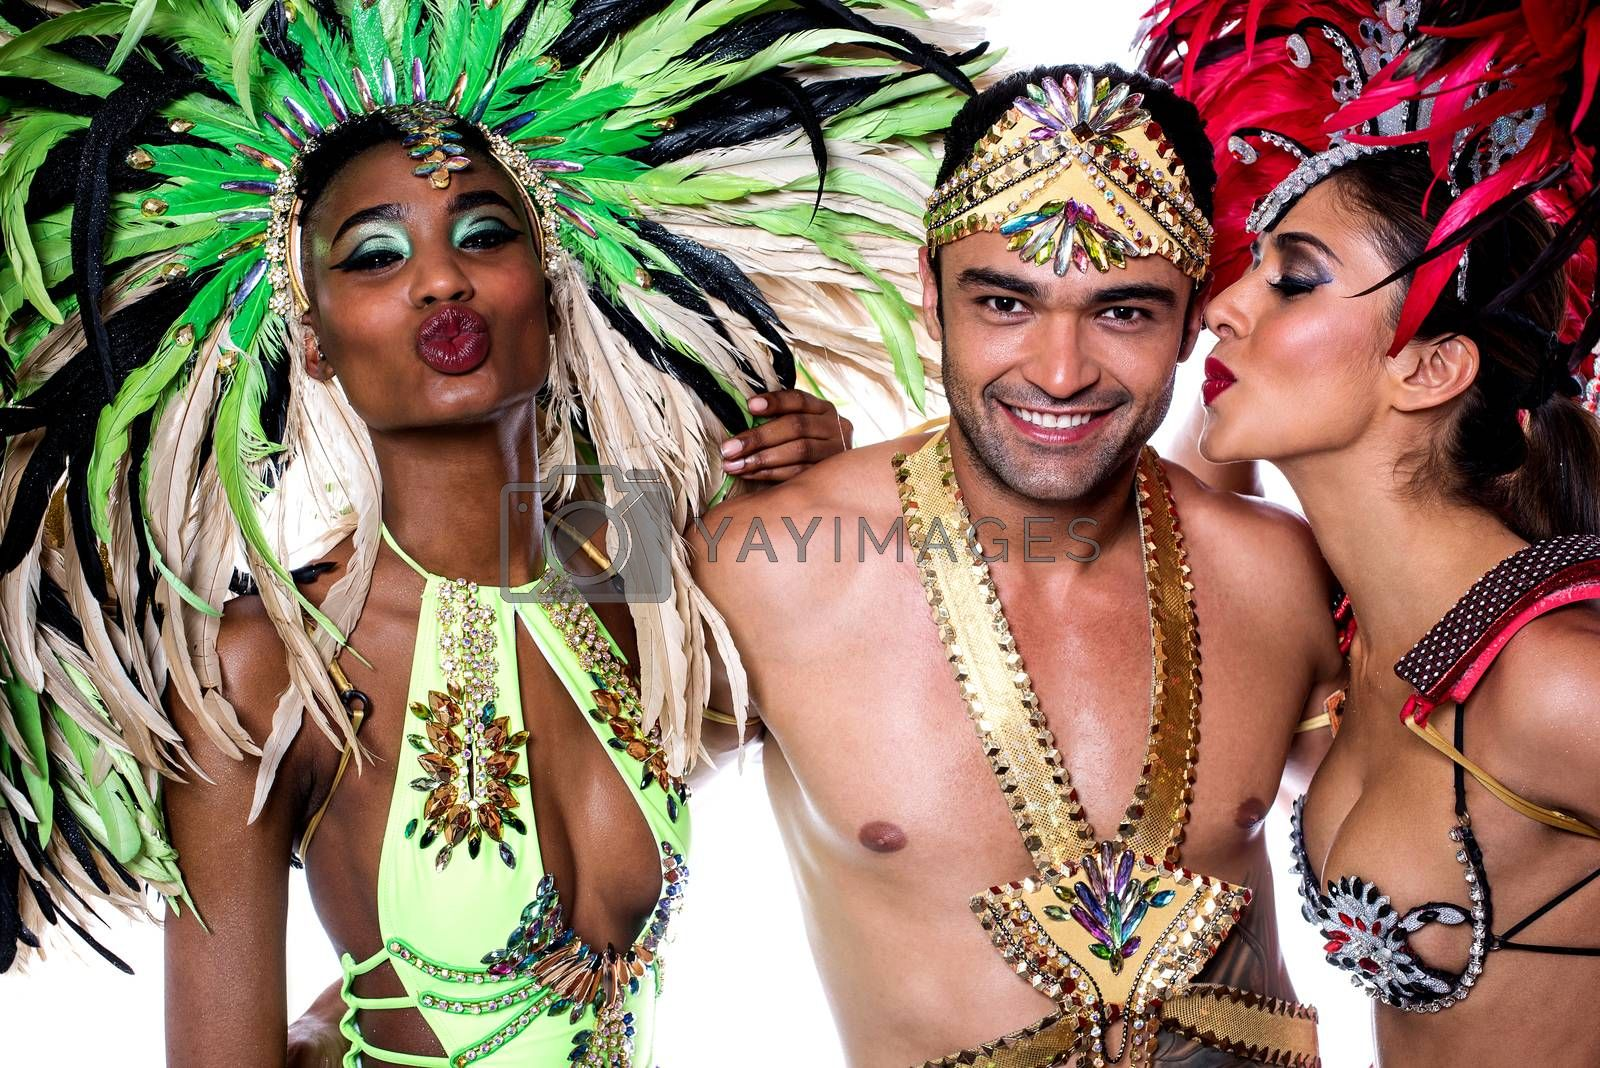 Samba dancers with colorful costume over white